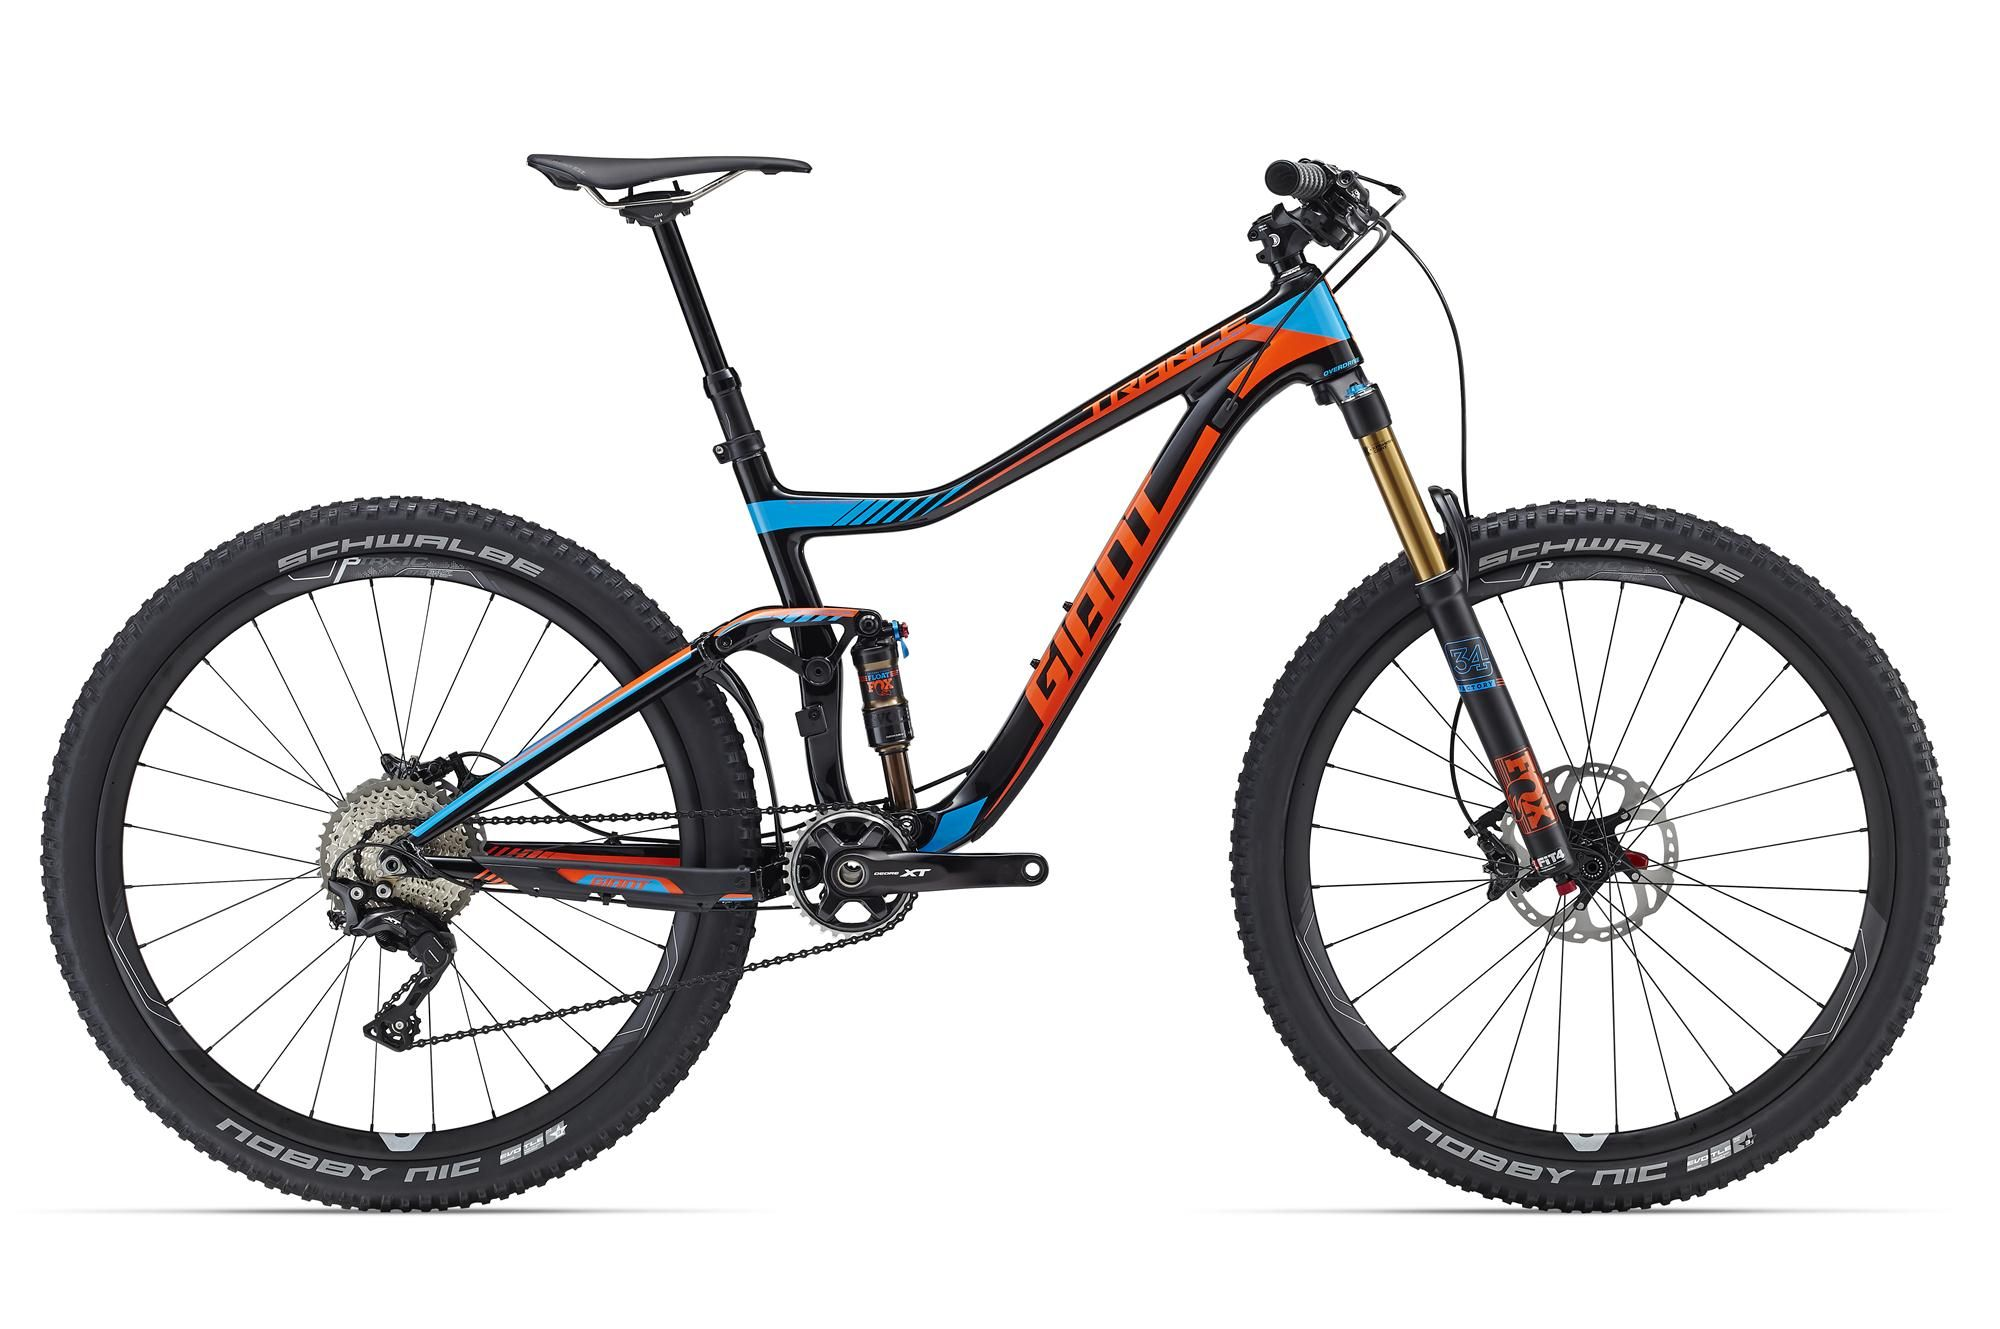 Велосипед Giant Trance Advanced 27.5 1 2016 велосипед giant trinity advanced pro 1 2016